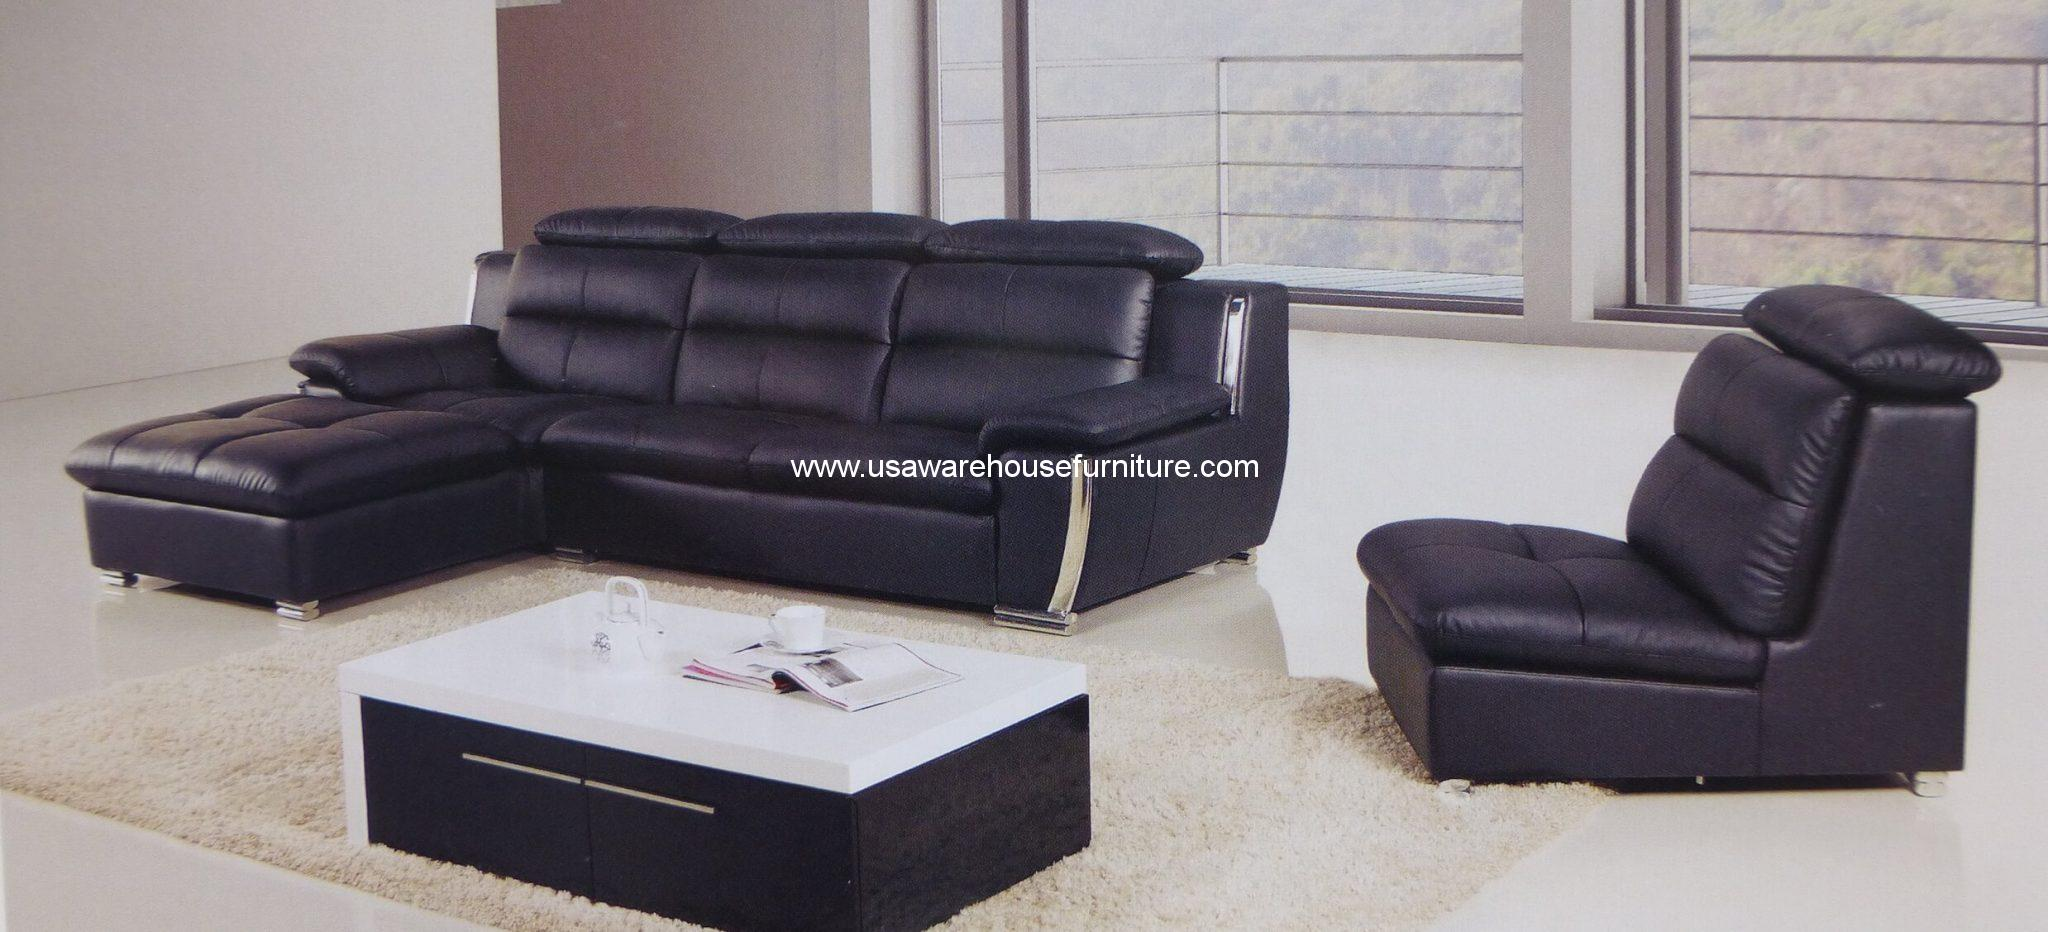 3 piece nicolaus black leather modern sectional set with for 3 piece black modern sectional sofa